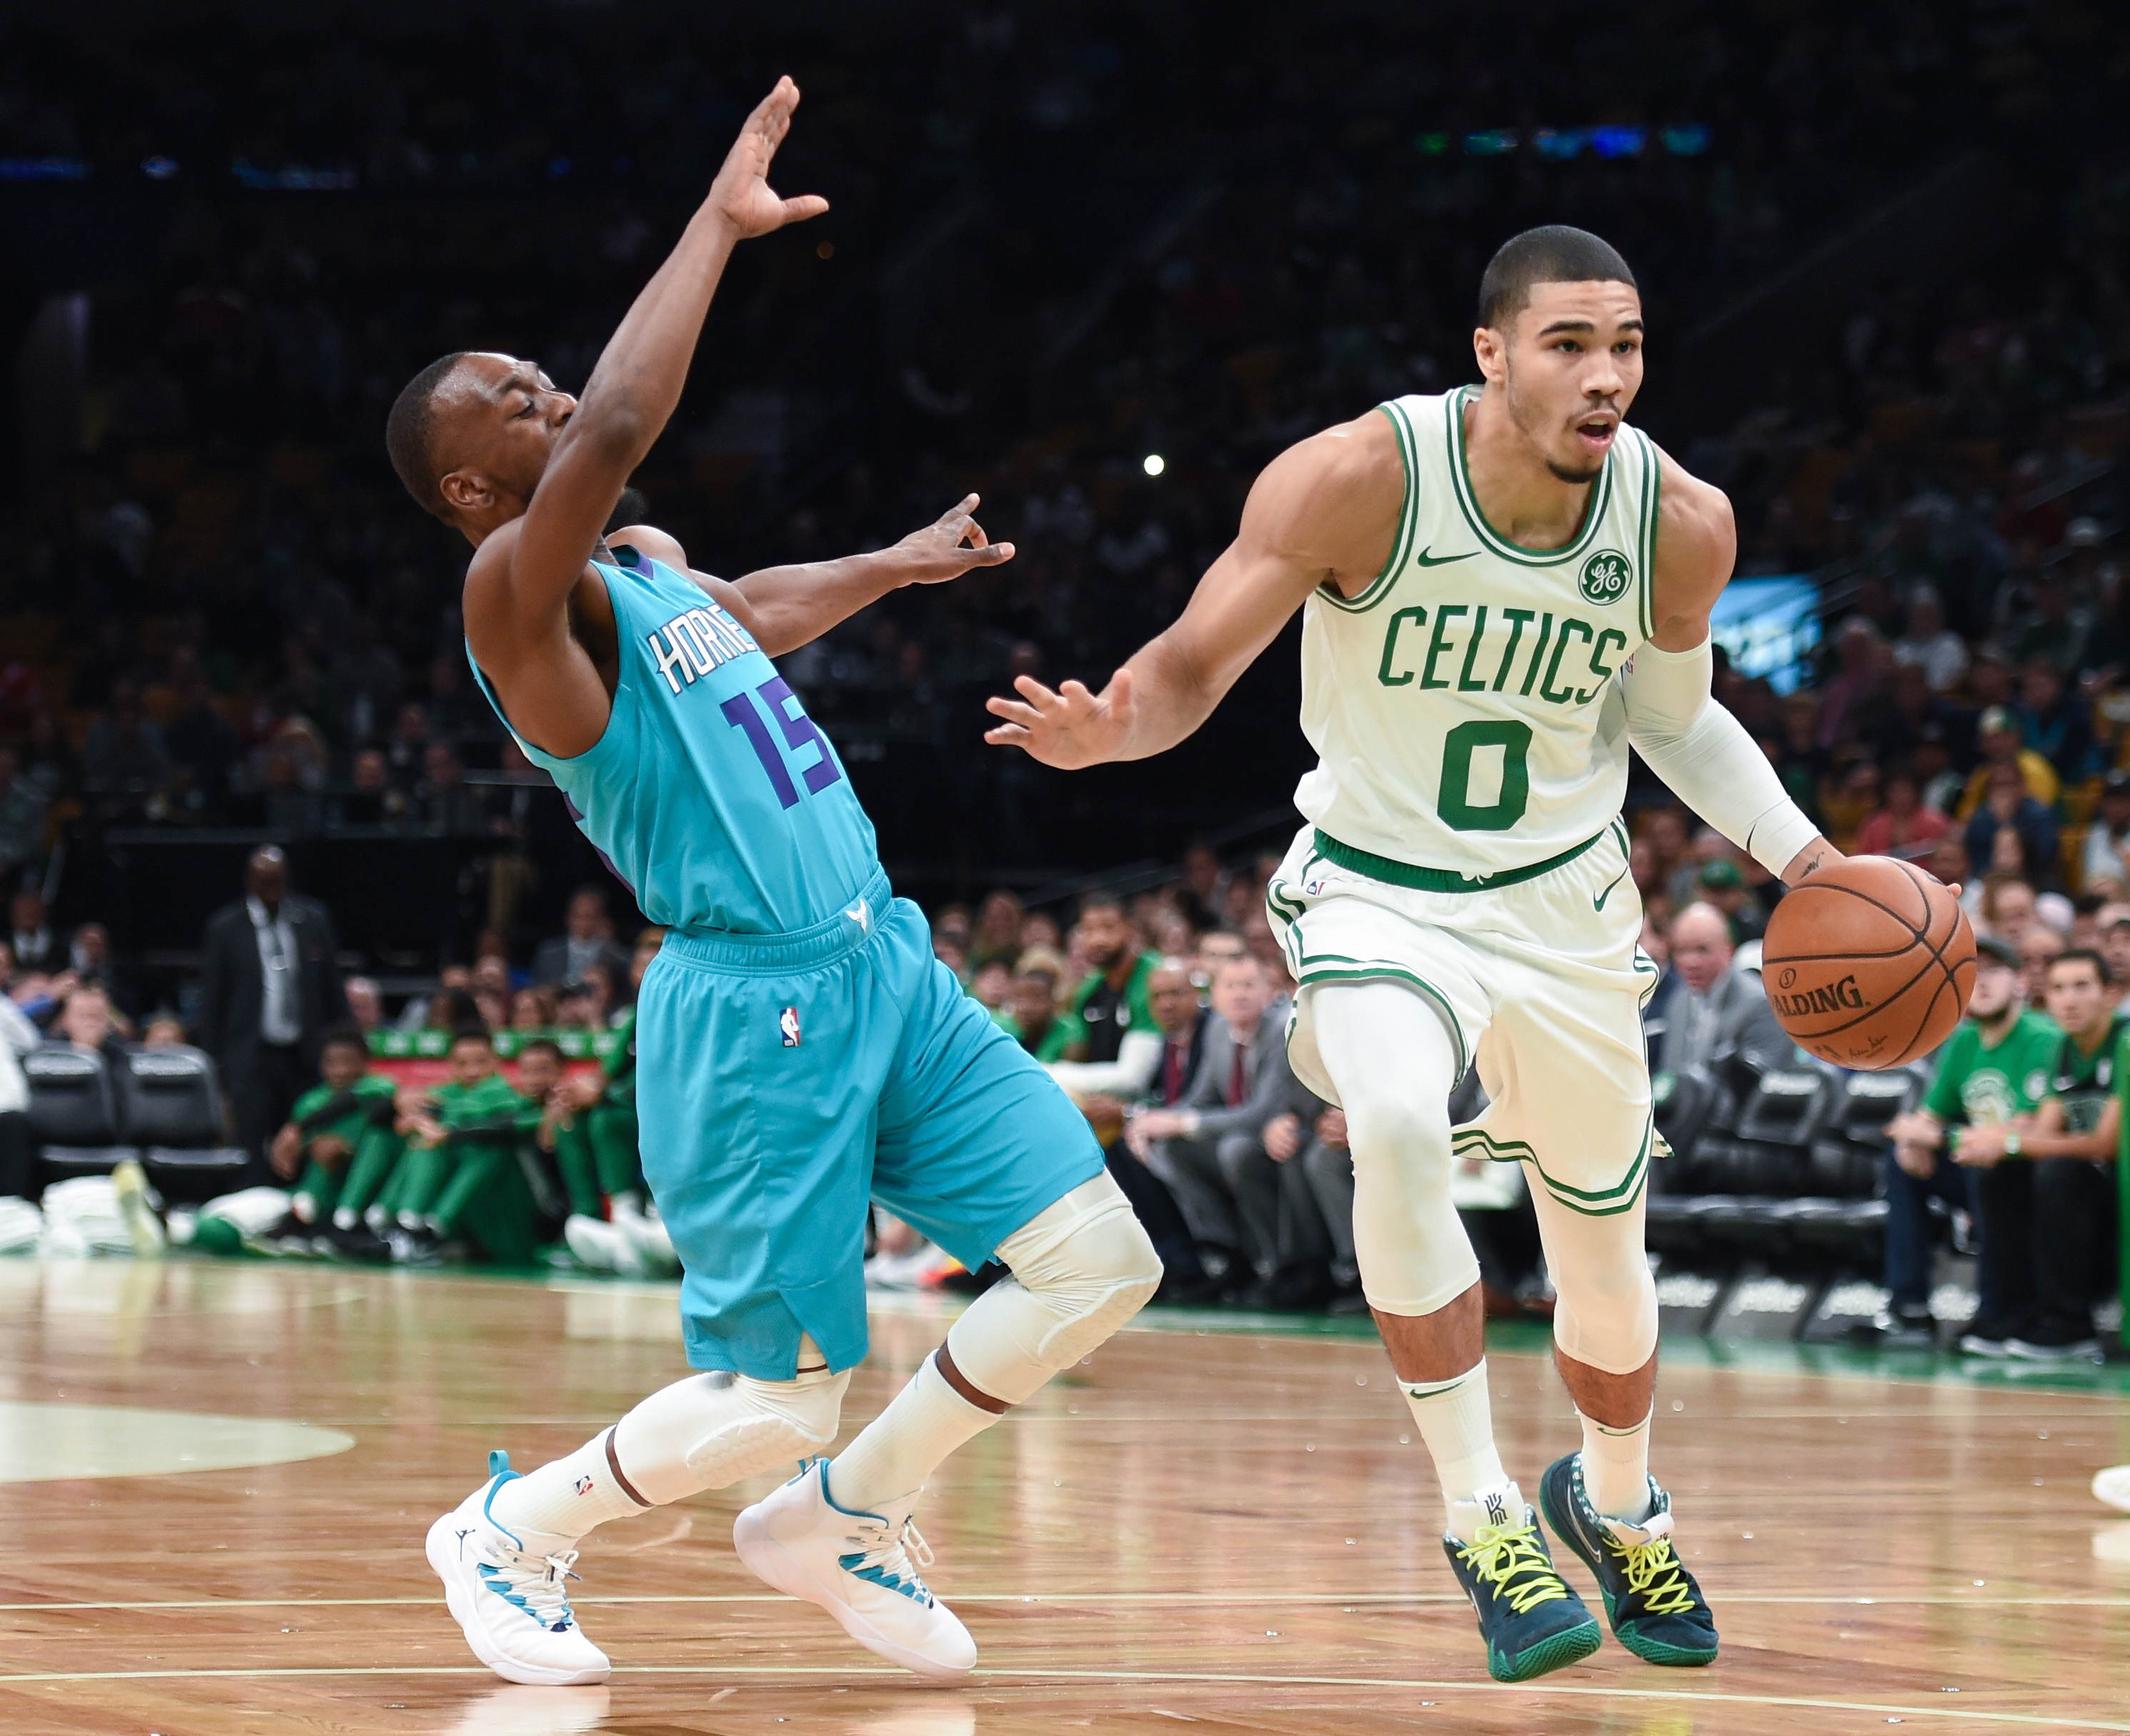 Season Predictions, Day/Night 3. Who will be the Celtics' MVP?